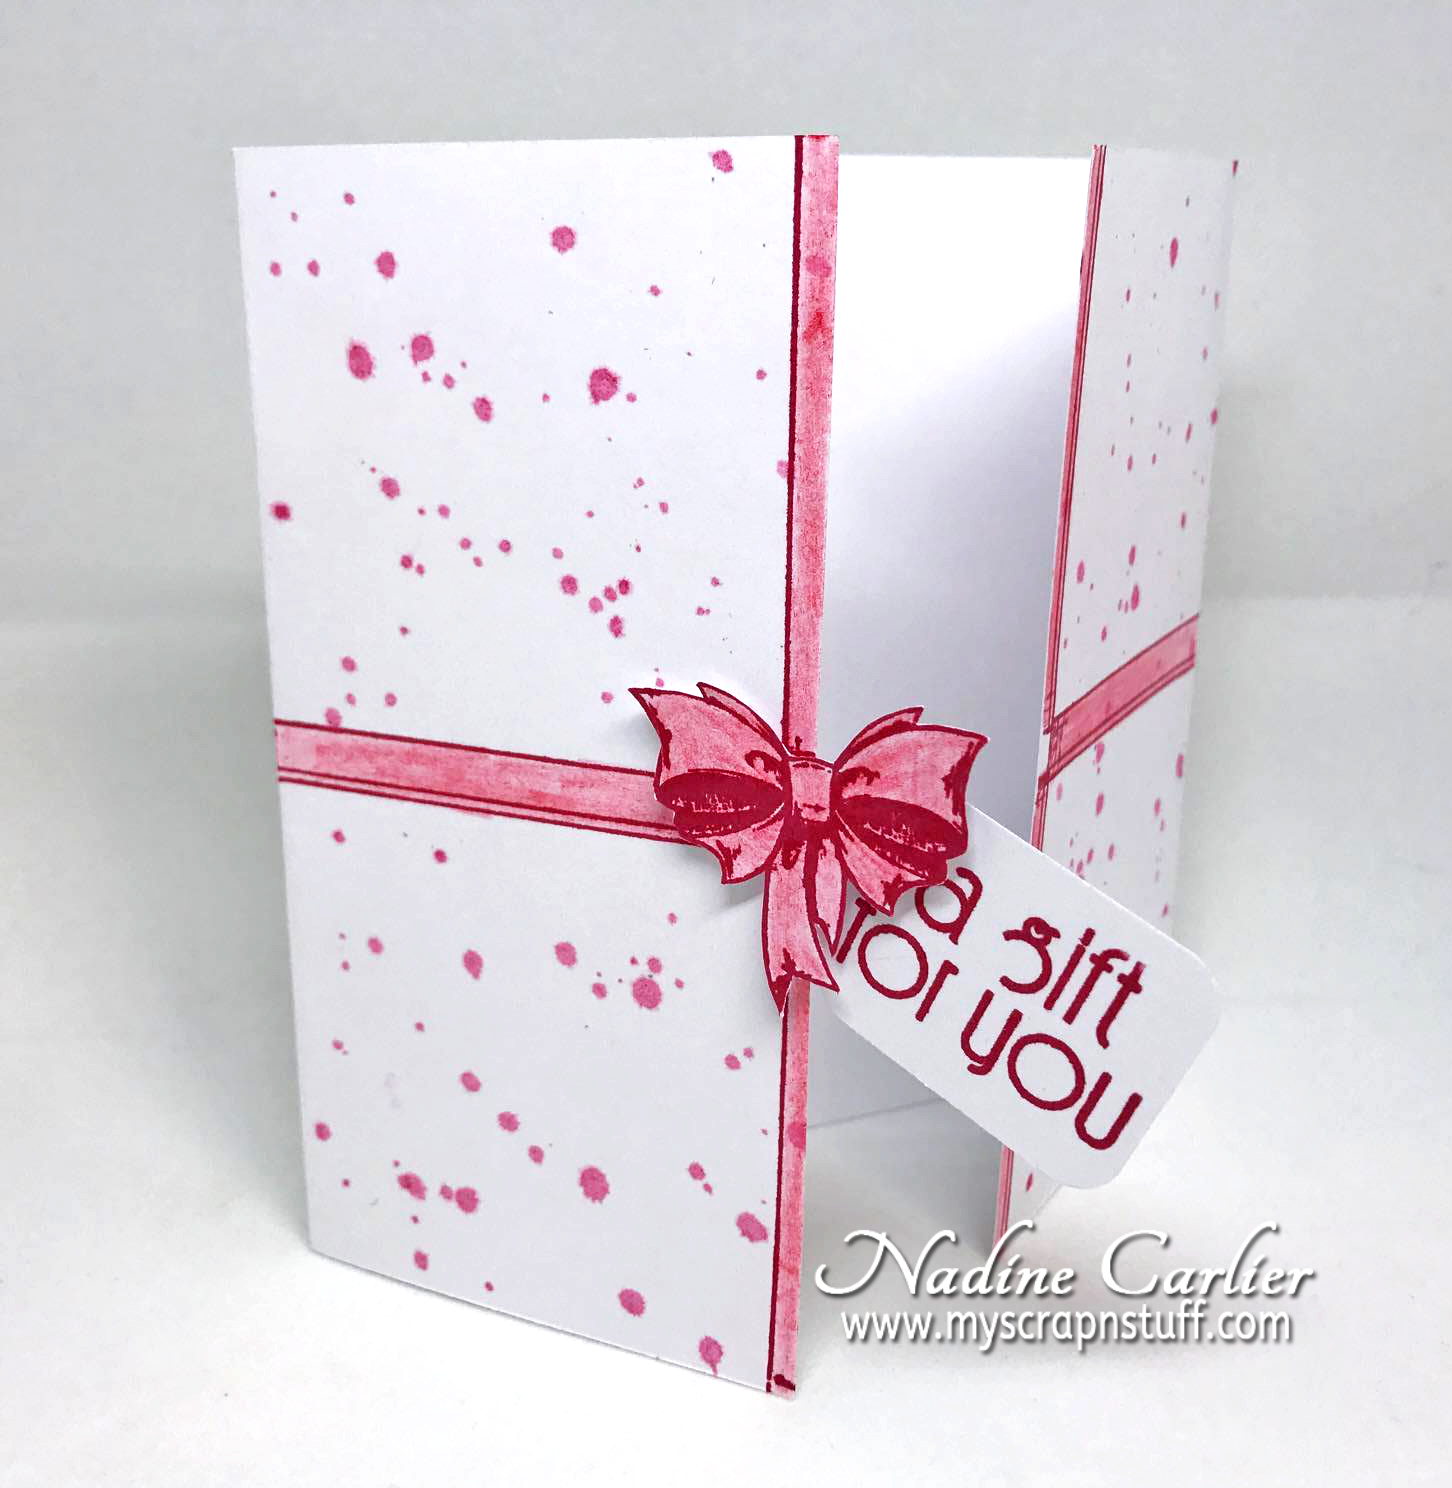 Present Card using Brutus Monroe by Nadine Carlier